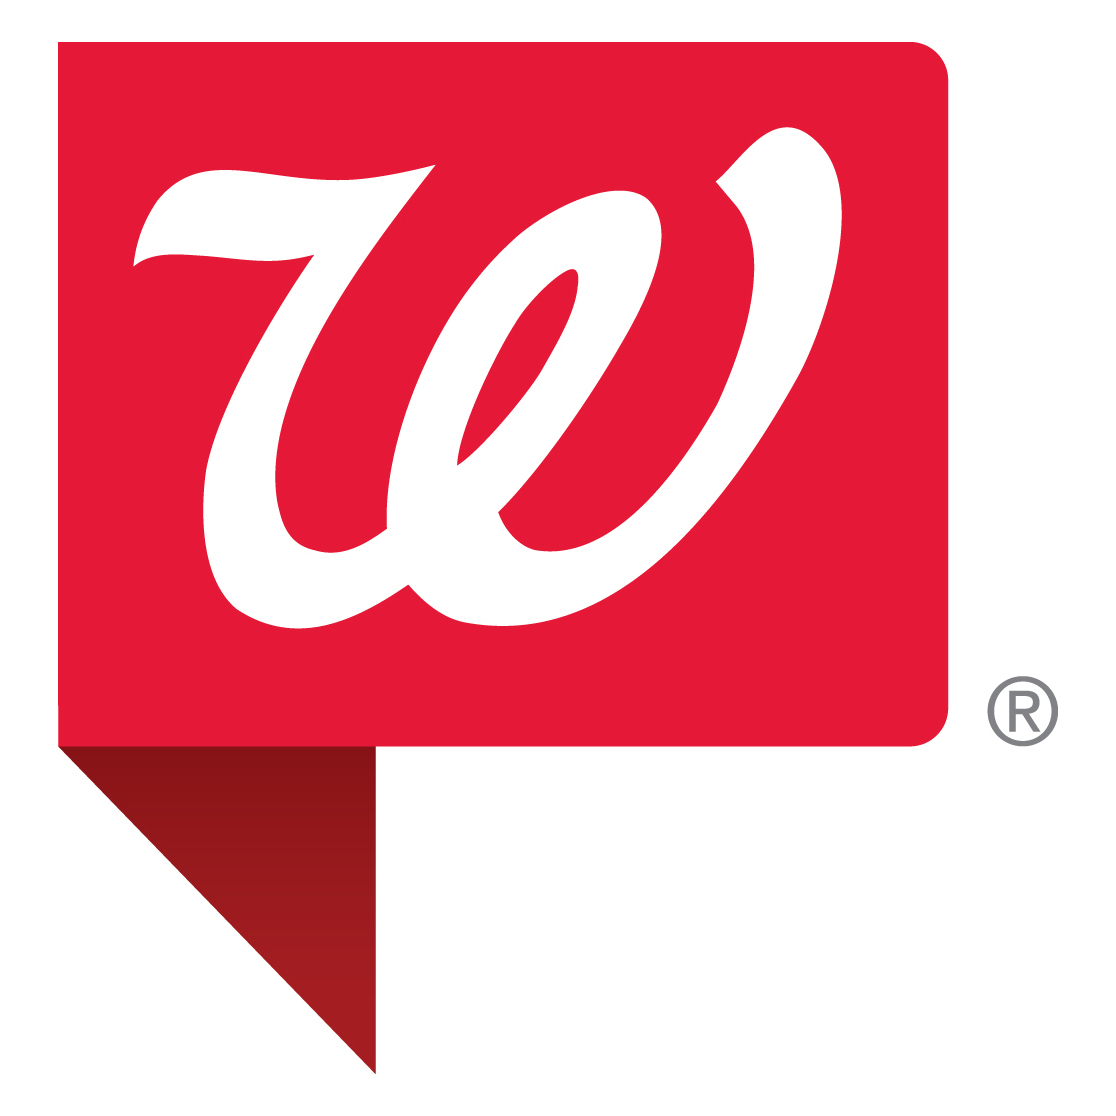 Walgreens Pharmacy - Mena, AR - Pharmacist